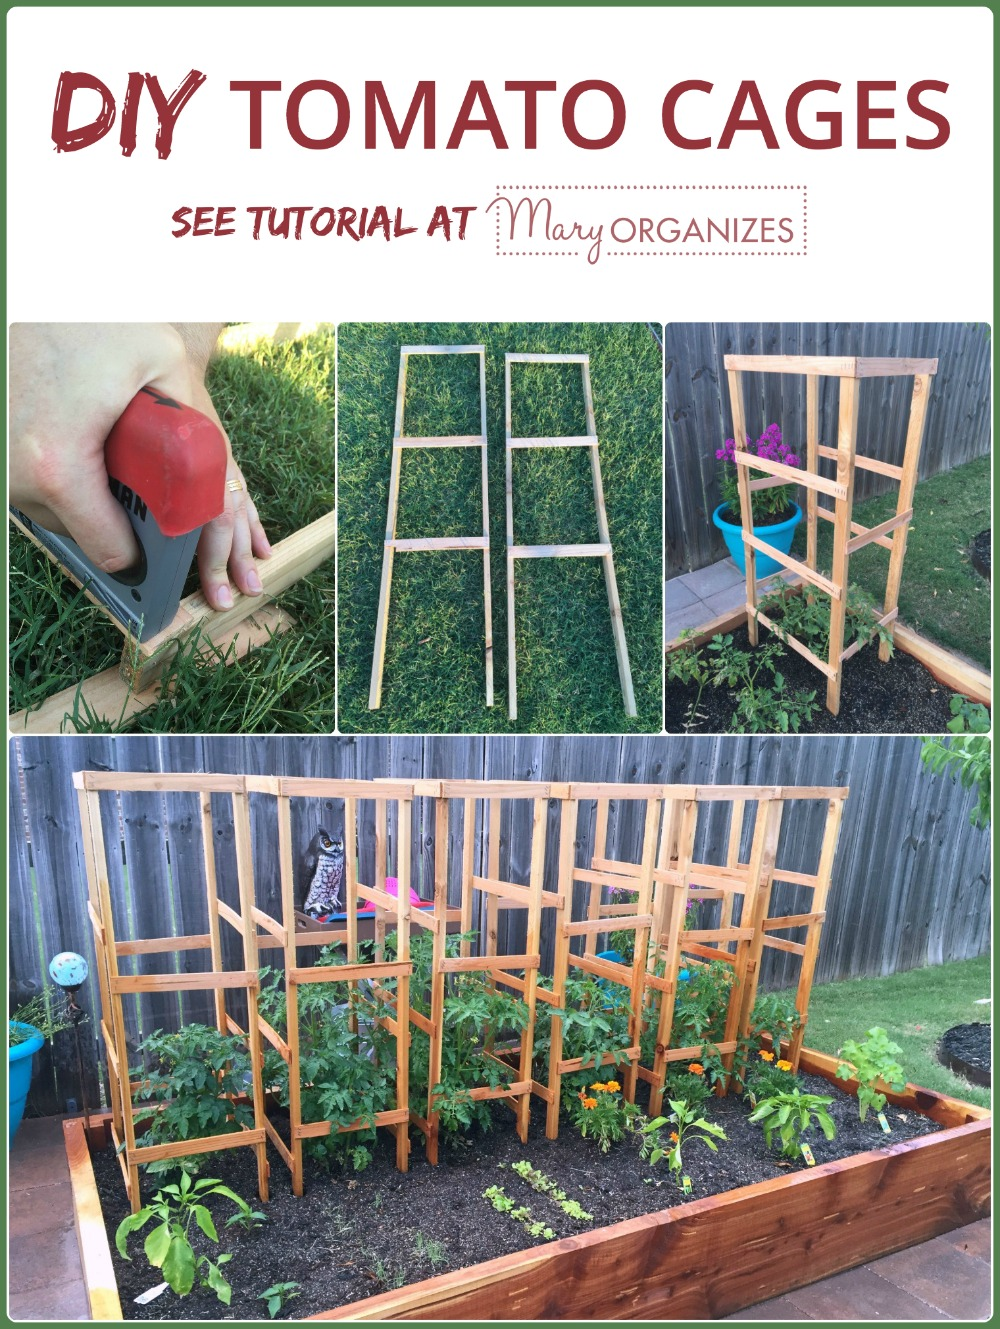 DIY Tomato Cage Tutorial for the Organic Garden -v1